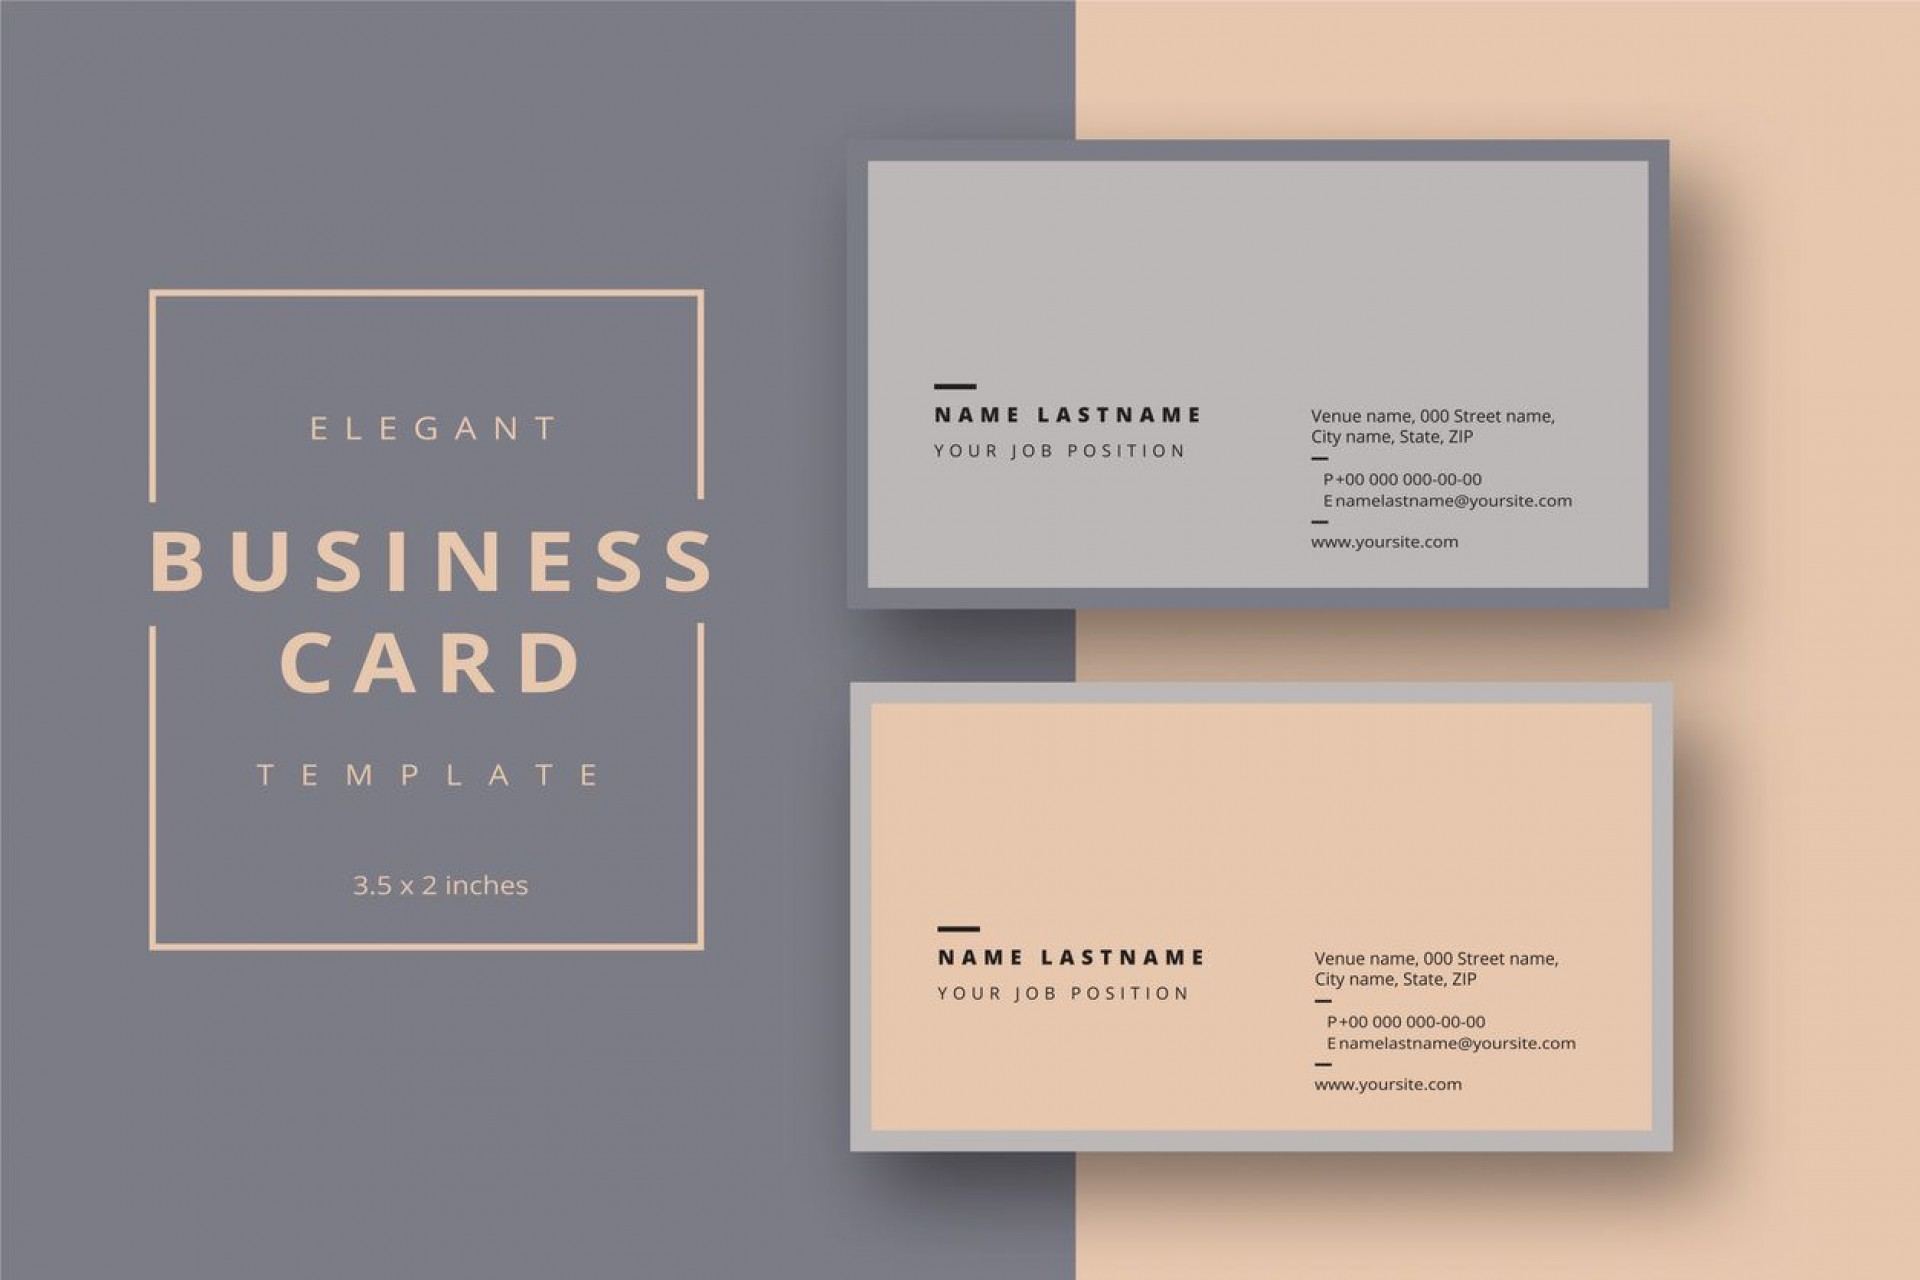 007 Unusual Microsoft Word Place Card Template Concept  Folded Free Name Busines Download1920